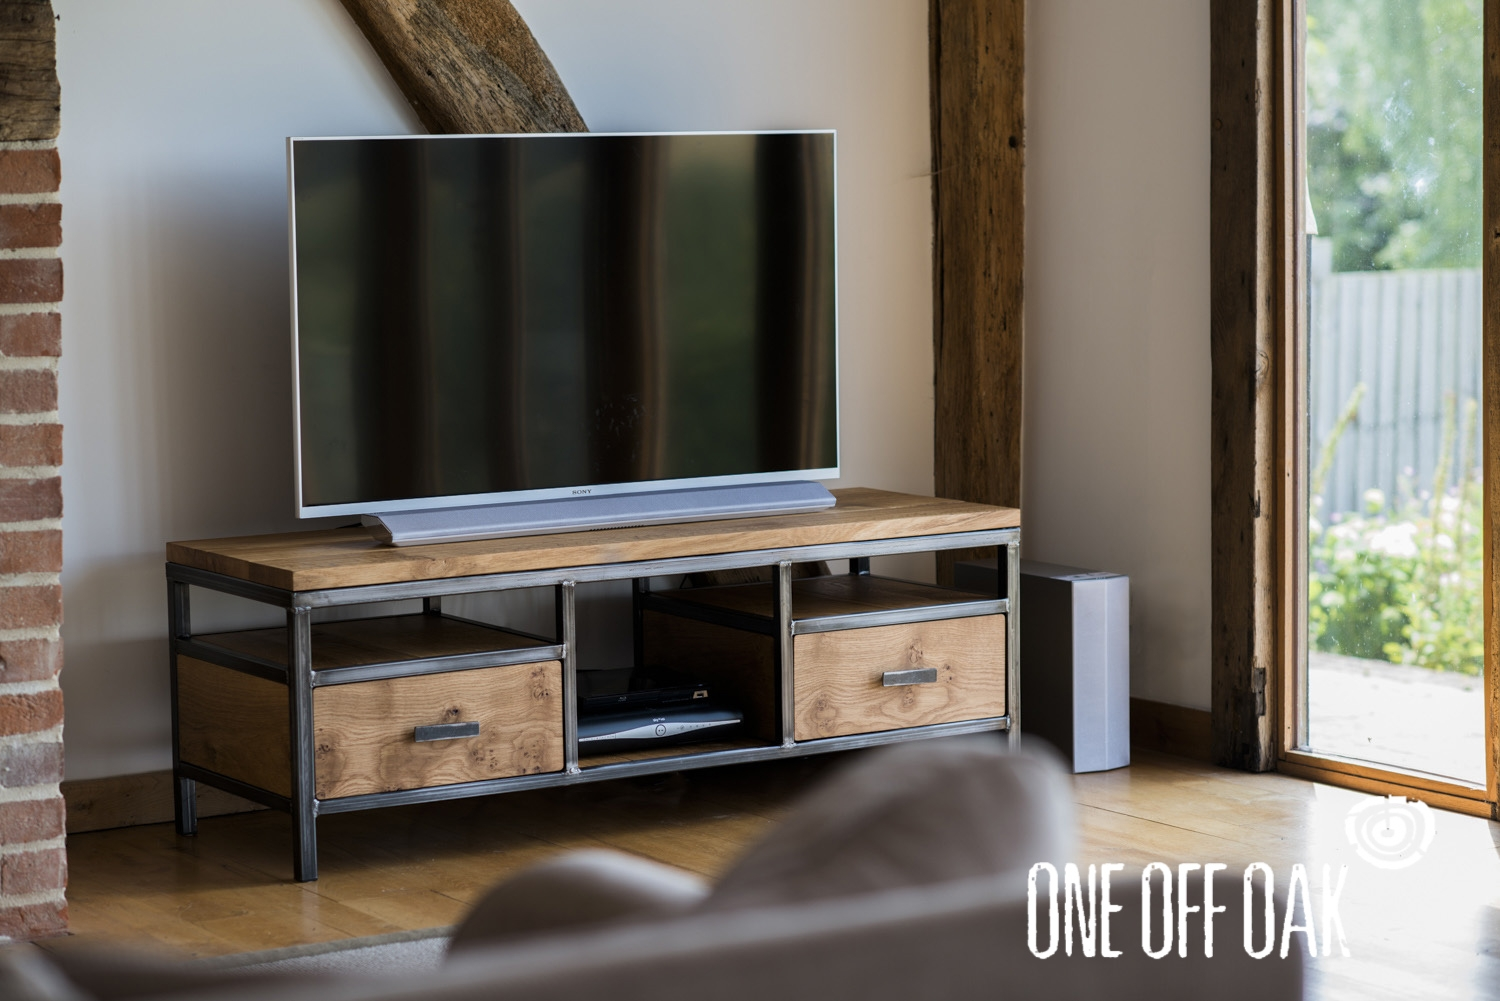 Tv Cabinet Bespoke Handmade Furniture From English Oak Pertaining To Bespoke Tv Cabinets (Image 15 of 15)